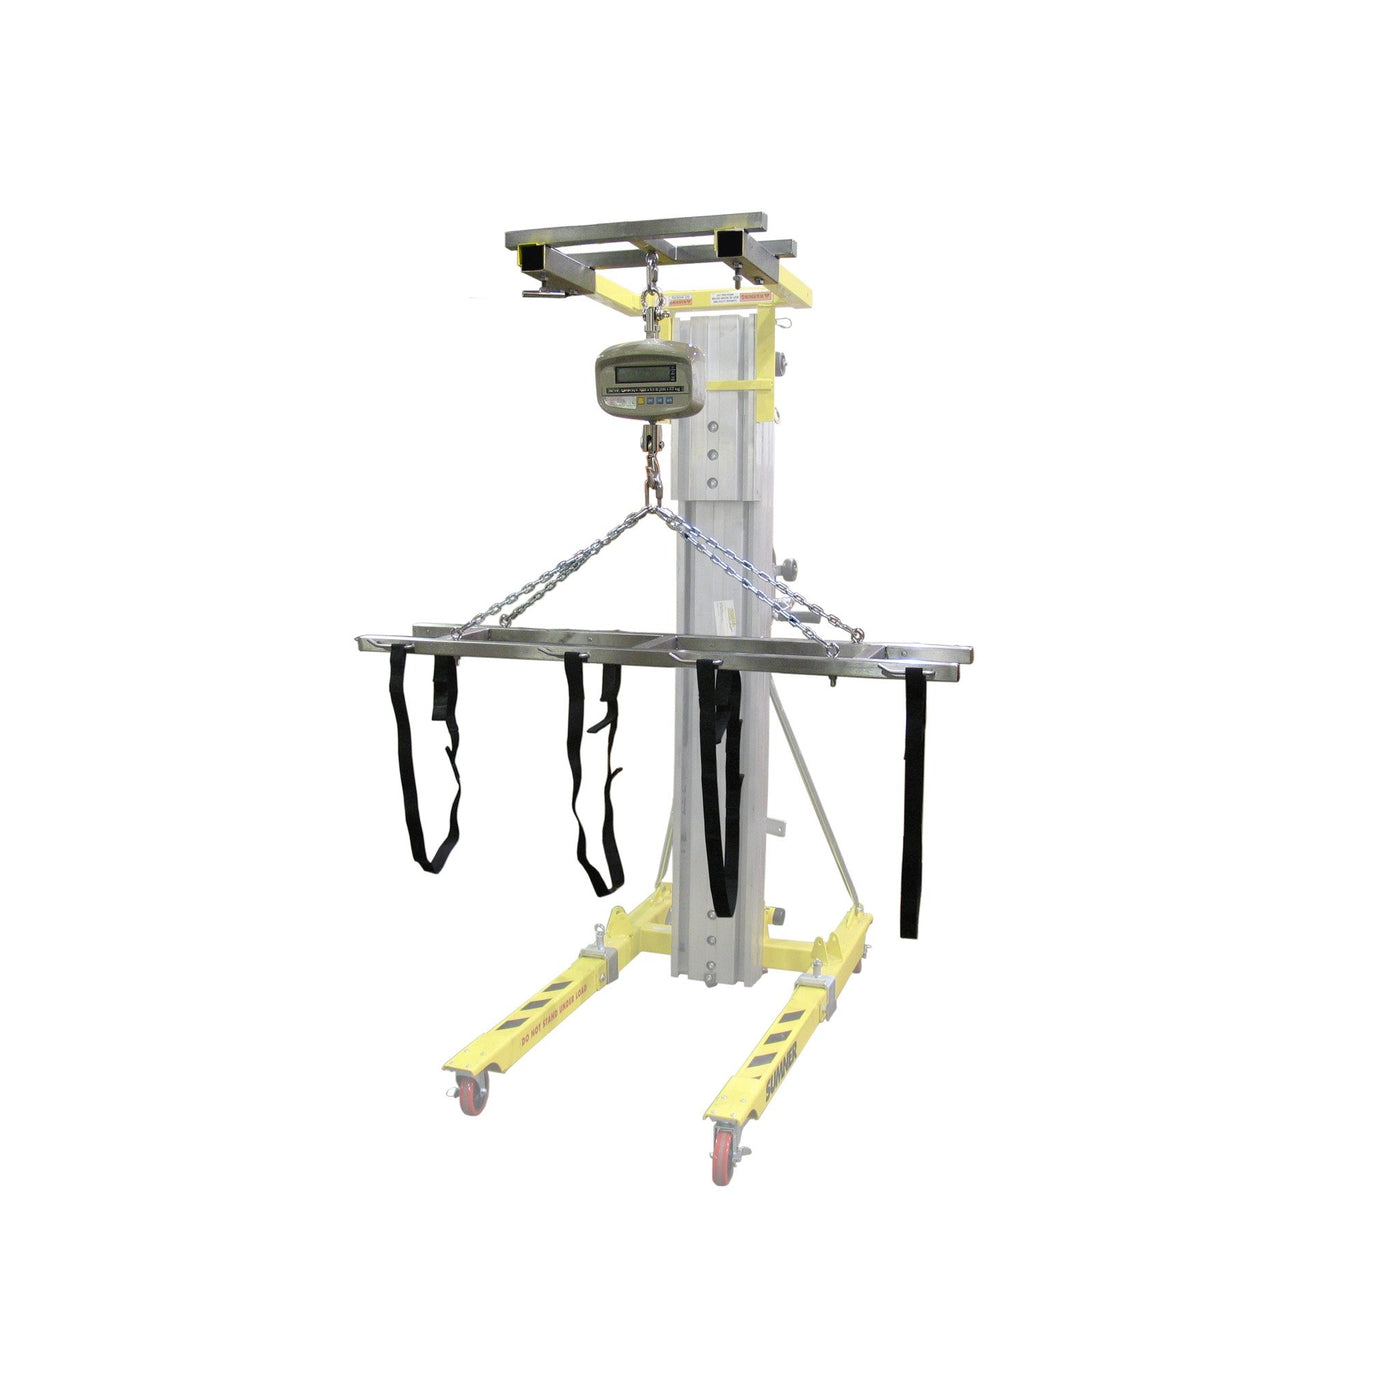 Adjustable Strap Lift Assembly with Scale Attachment-Cadaver Handling & Storage Systems-Mortech Manufacturing Company Inc. Quality Stainless Steel Autopsy, Morgue, Funeral Home, Necropsy, Veterinary / Anatomy, Dissection Equipment and Accessories